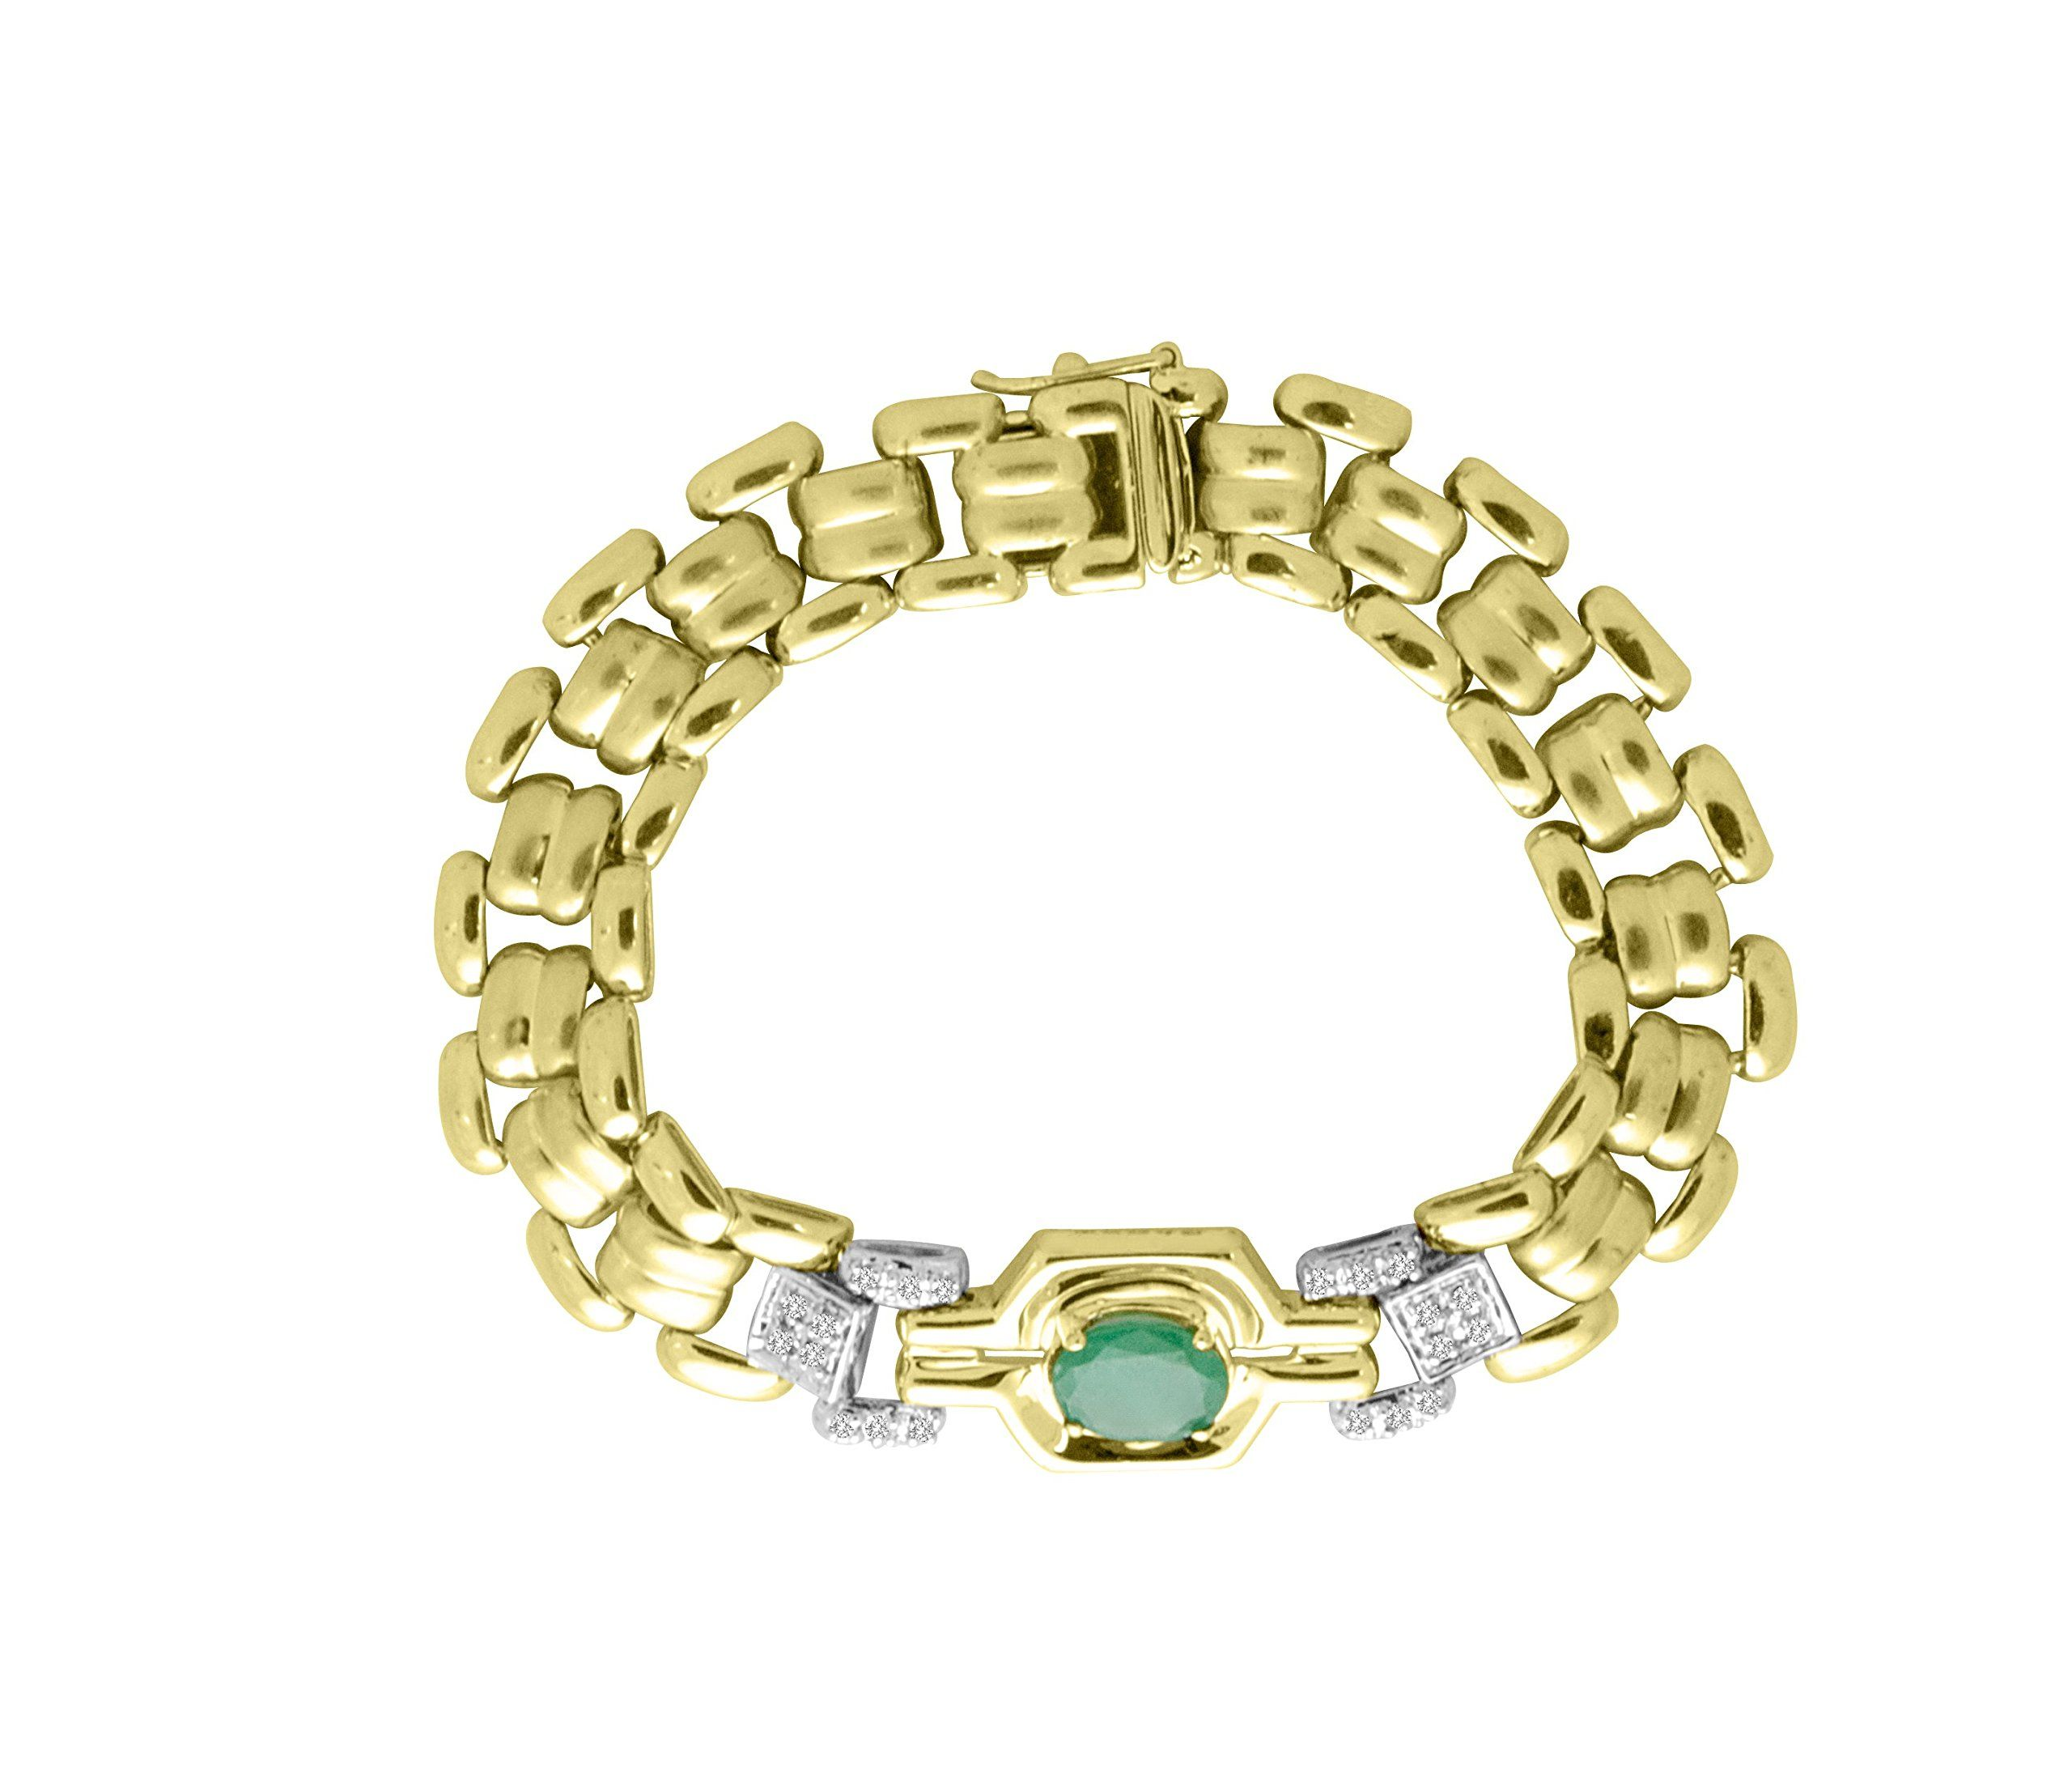 Emerald u diamond tennis bracelet k yellow gold direct